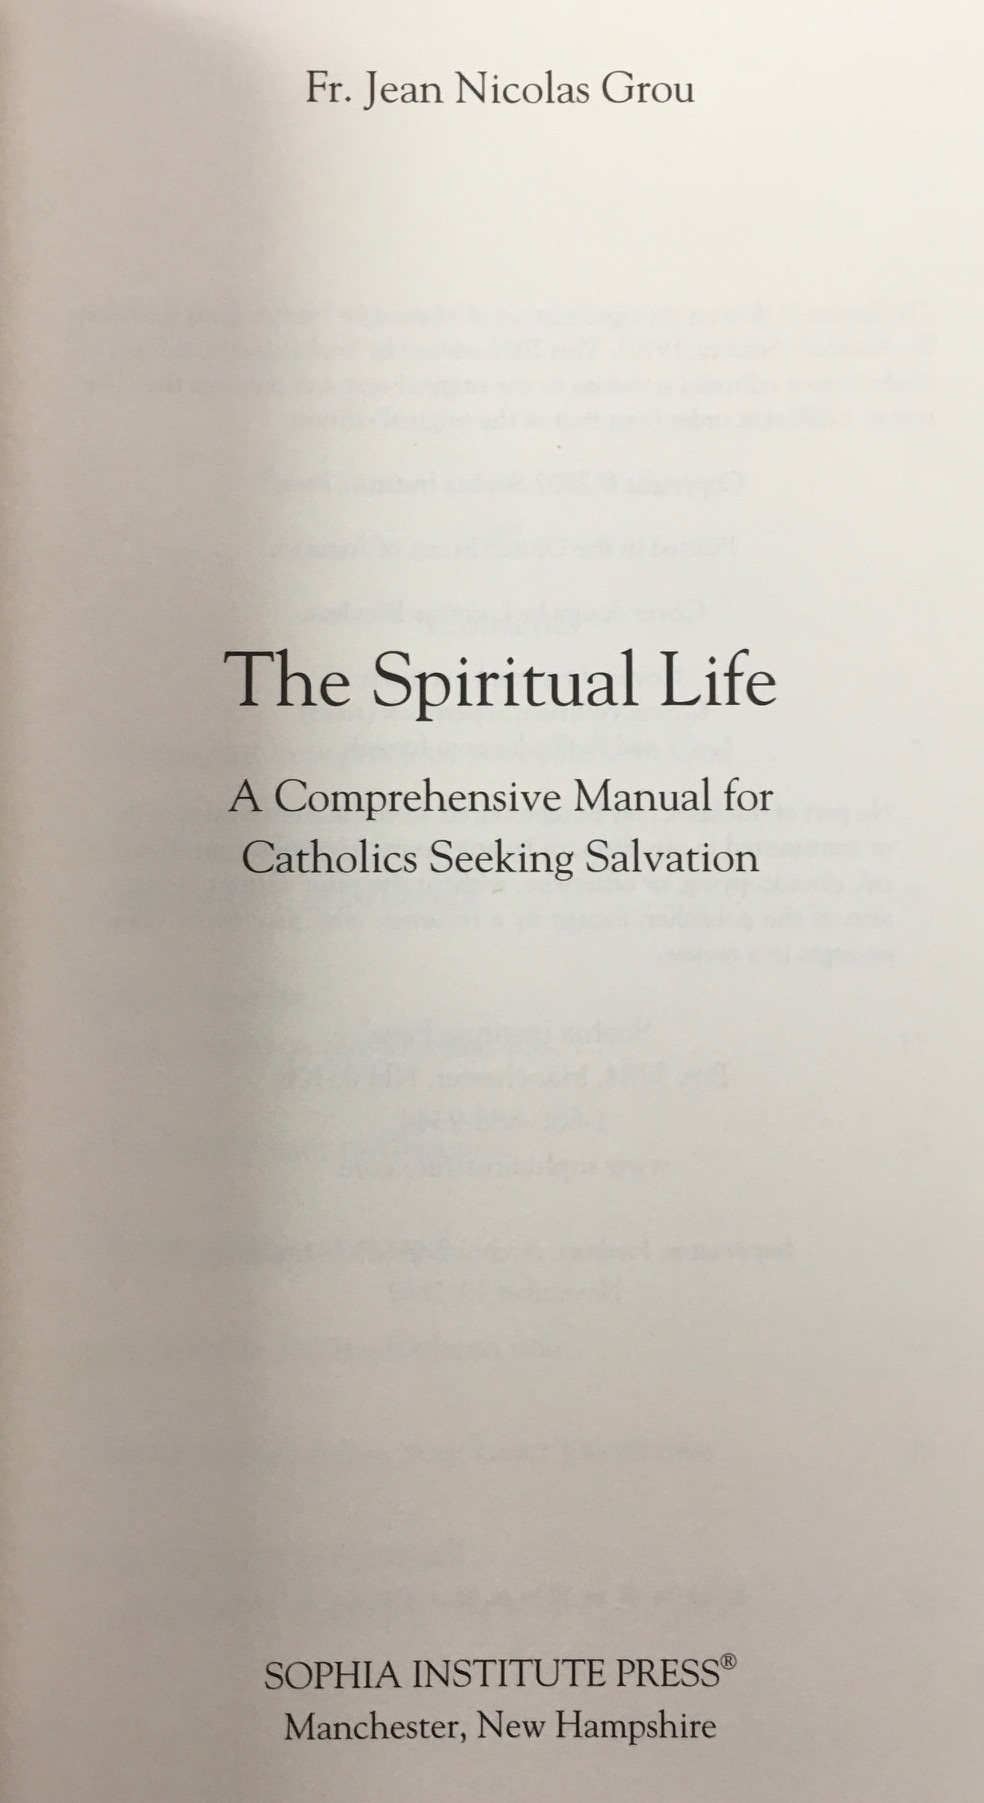 Image for The Spiritual Life: A Comprehensive Manual for Catholics Seeking Salvation